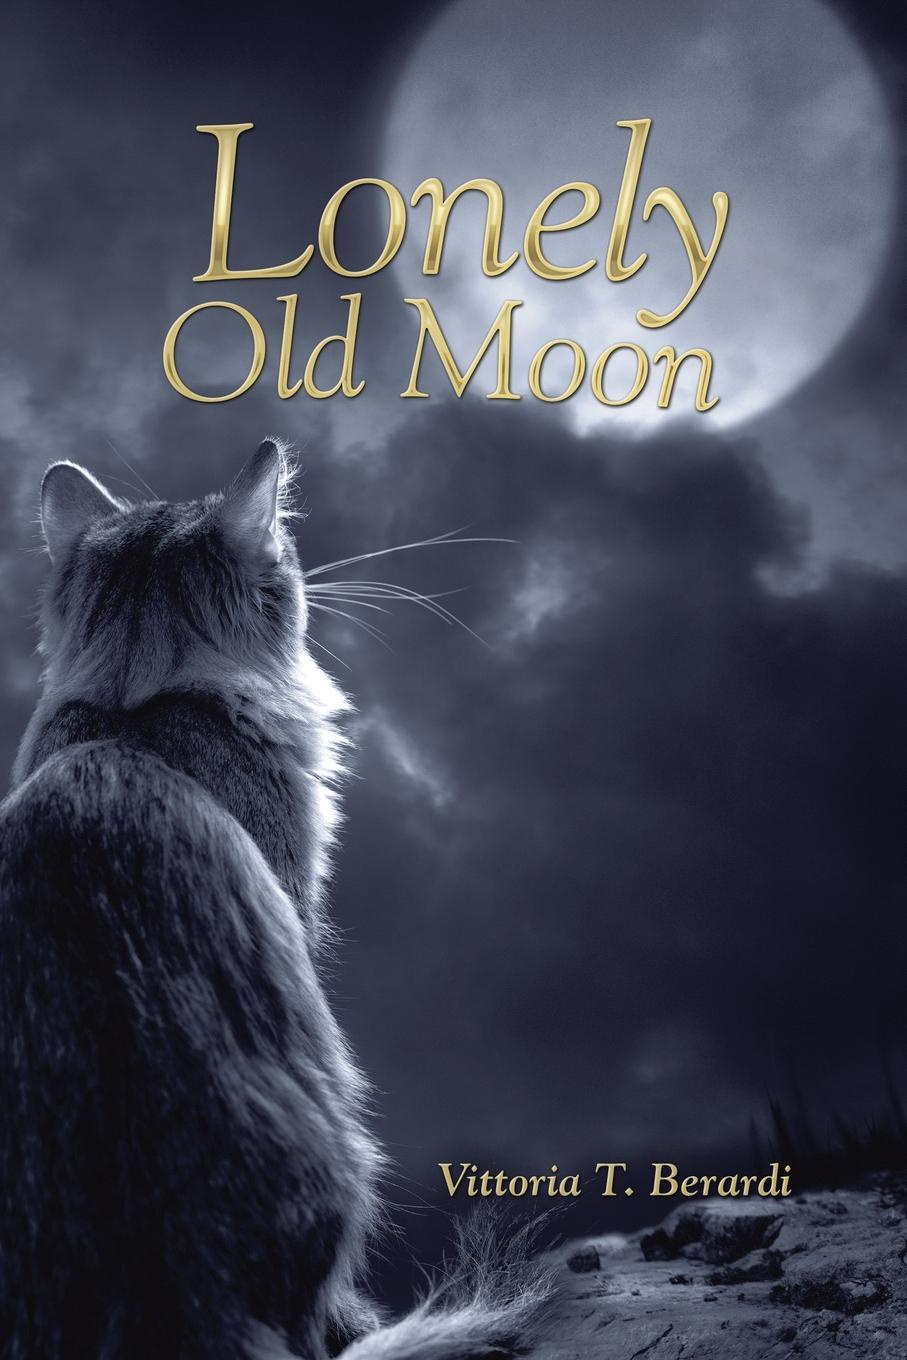 Vittoria T. Berardi Lonely Old Moon history of my life